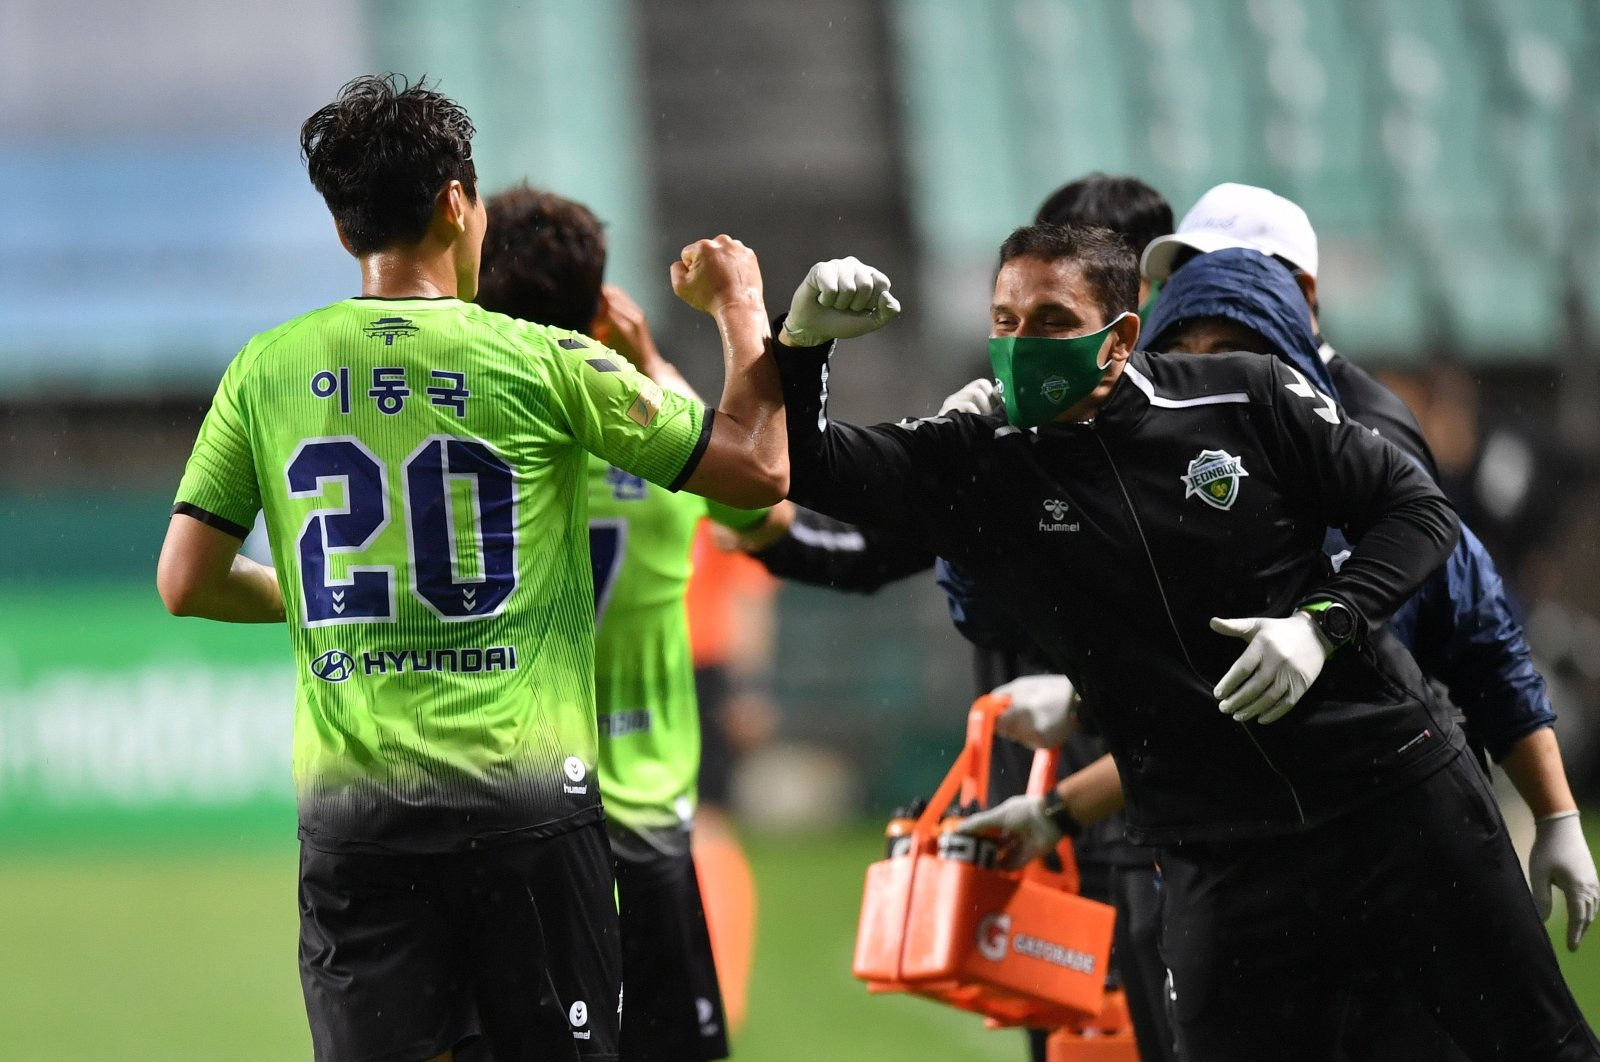 Jeonbuk Hyundai Motors' Lee Dong-gook (L) celebrates his goal with his mask-wearing team staff by bumping elbows to as a precaution against the pandemic, in Jeonju, South Korea, May 8, 2020. (AFP Photo)